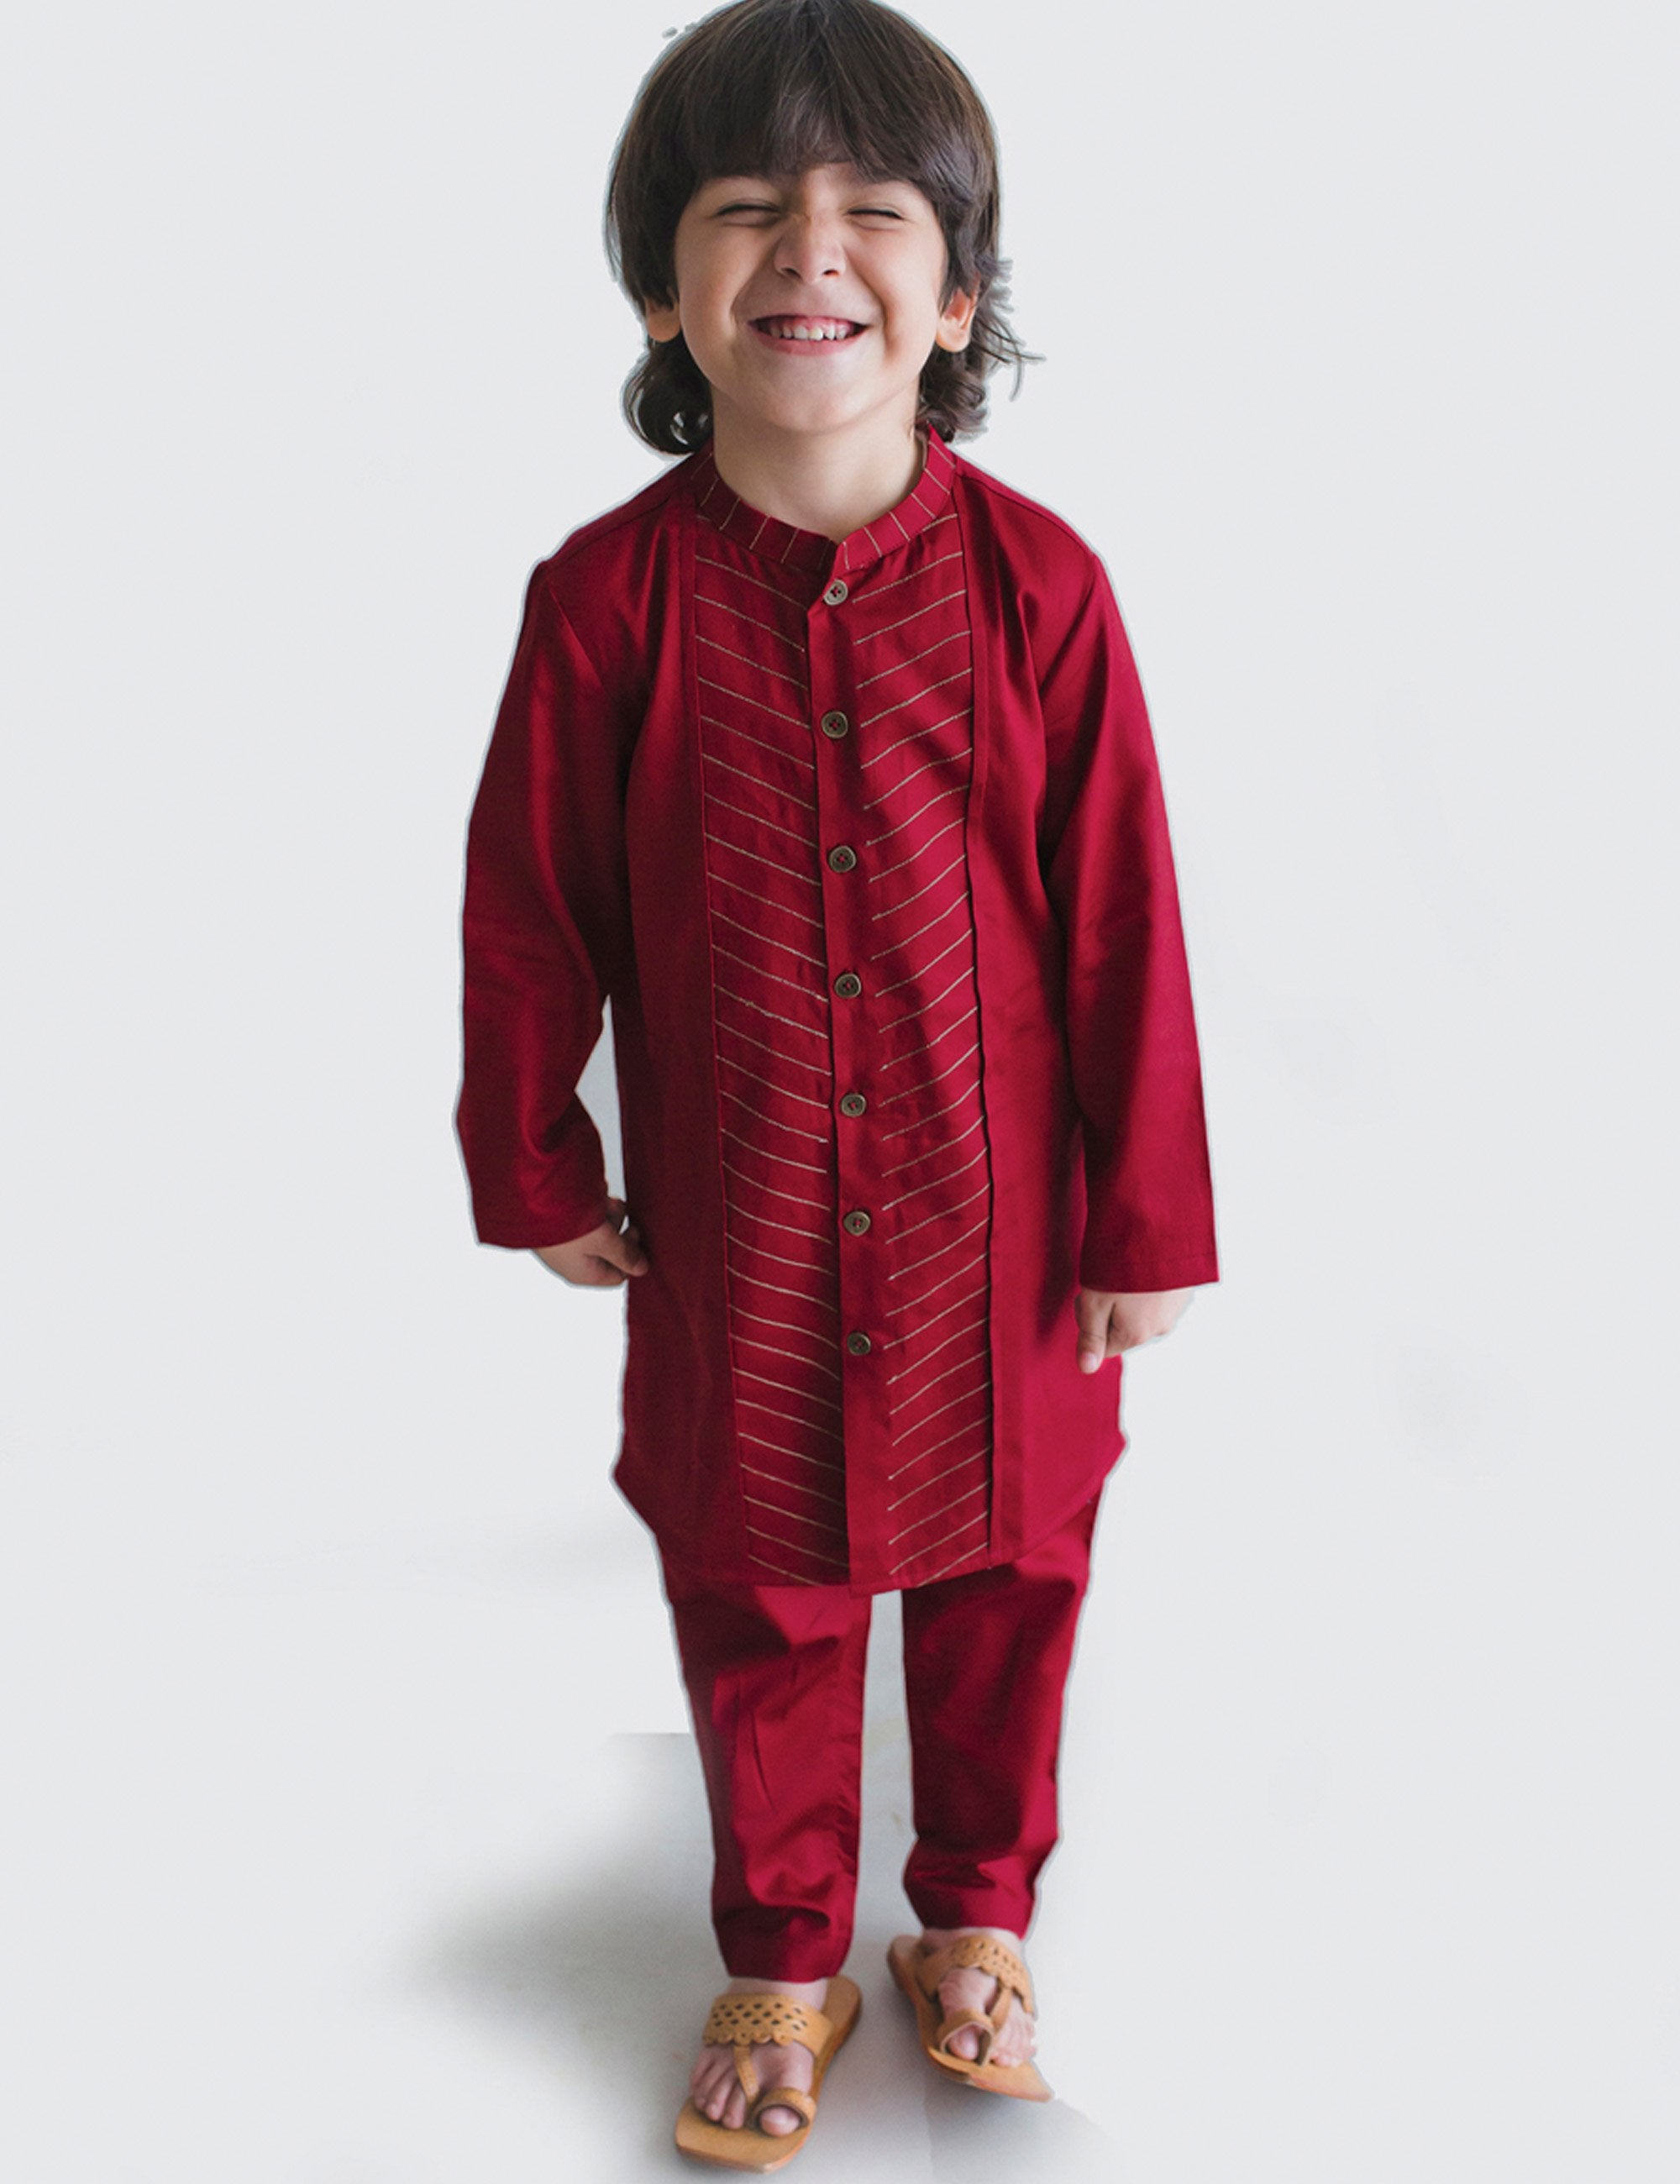 Cotton Boy Bundi Kurta Set Maroon Jacquard 3 Pc